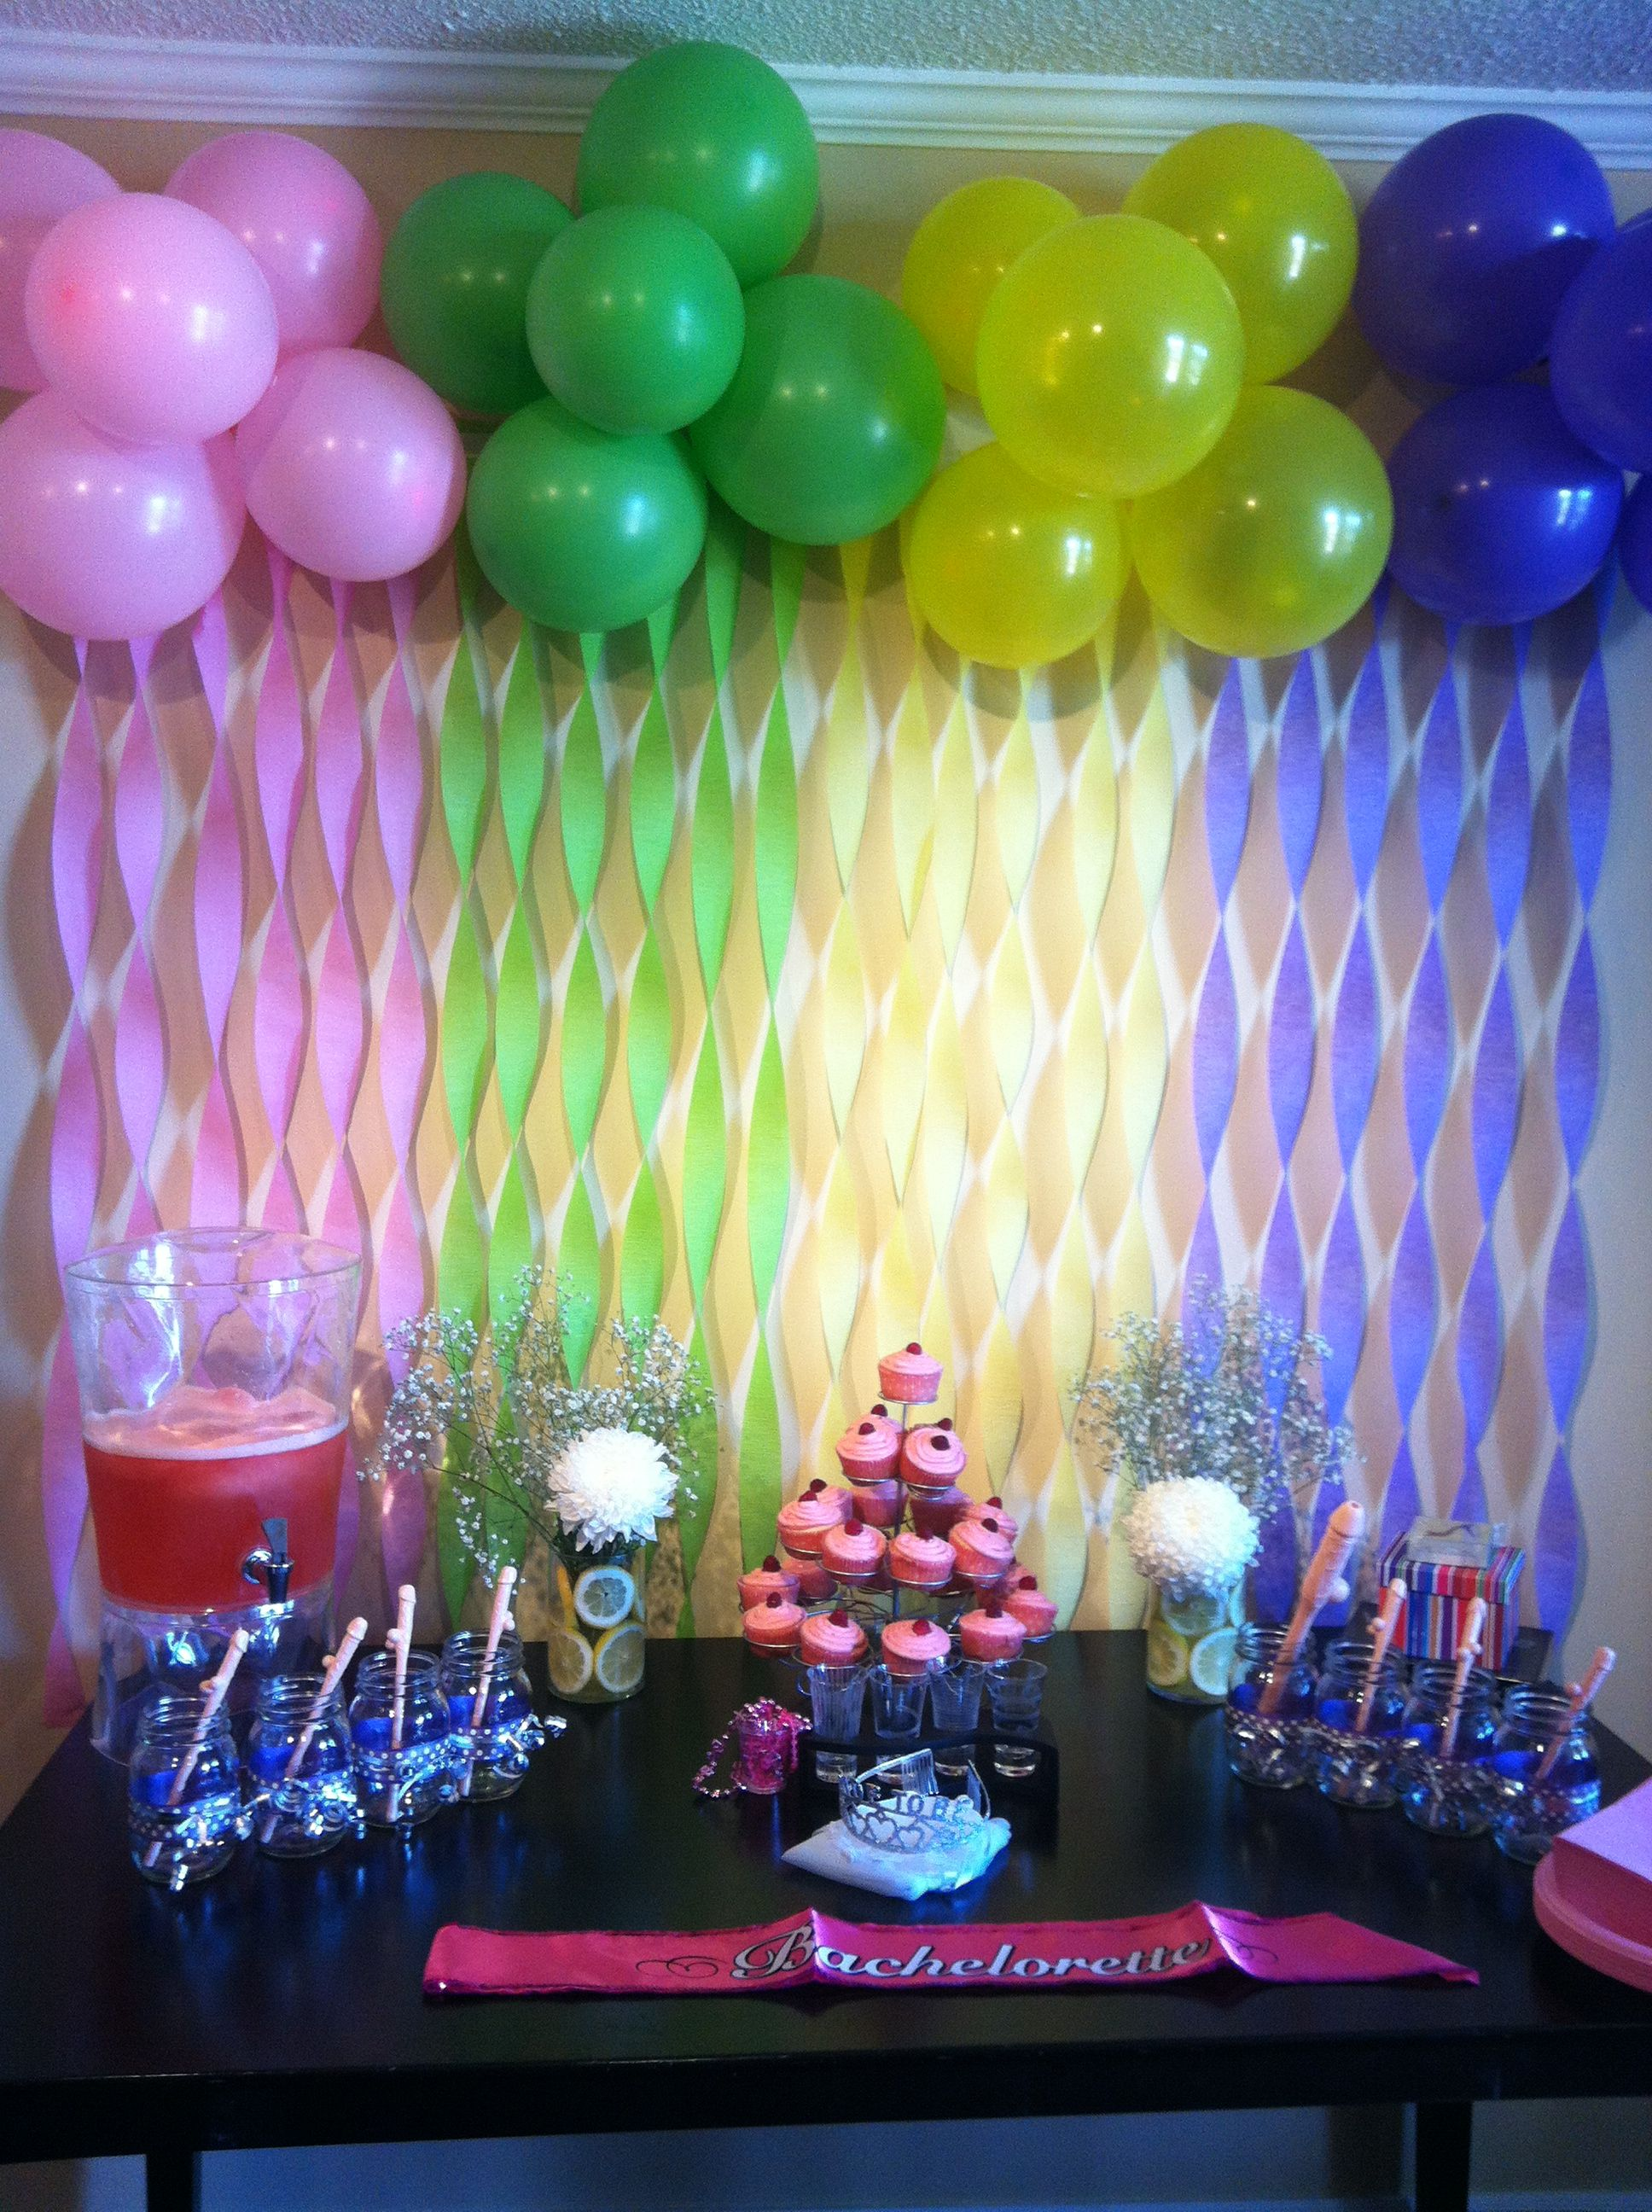 Balloon Party Decorations Ideas